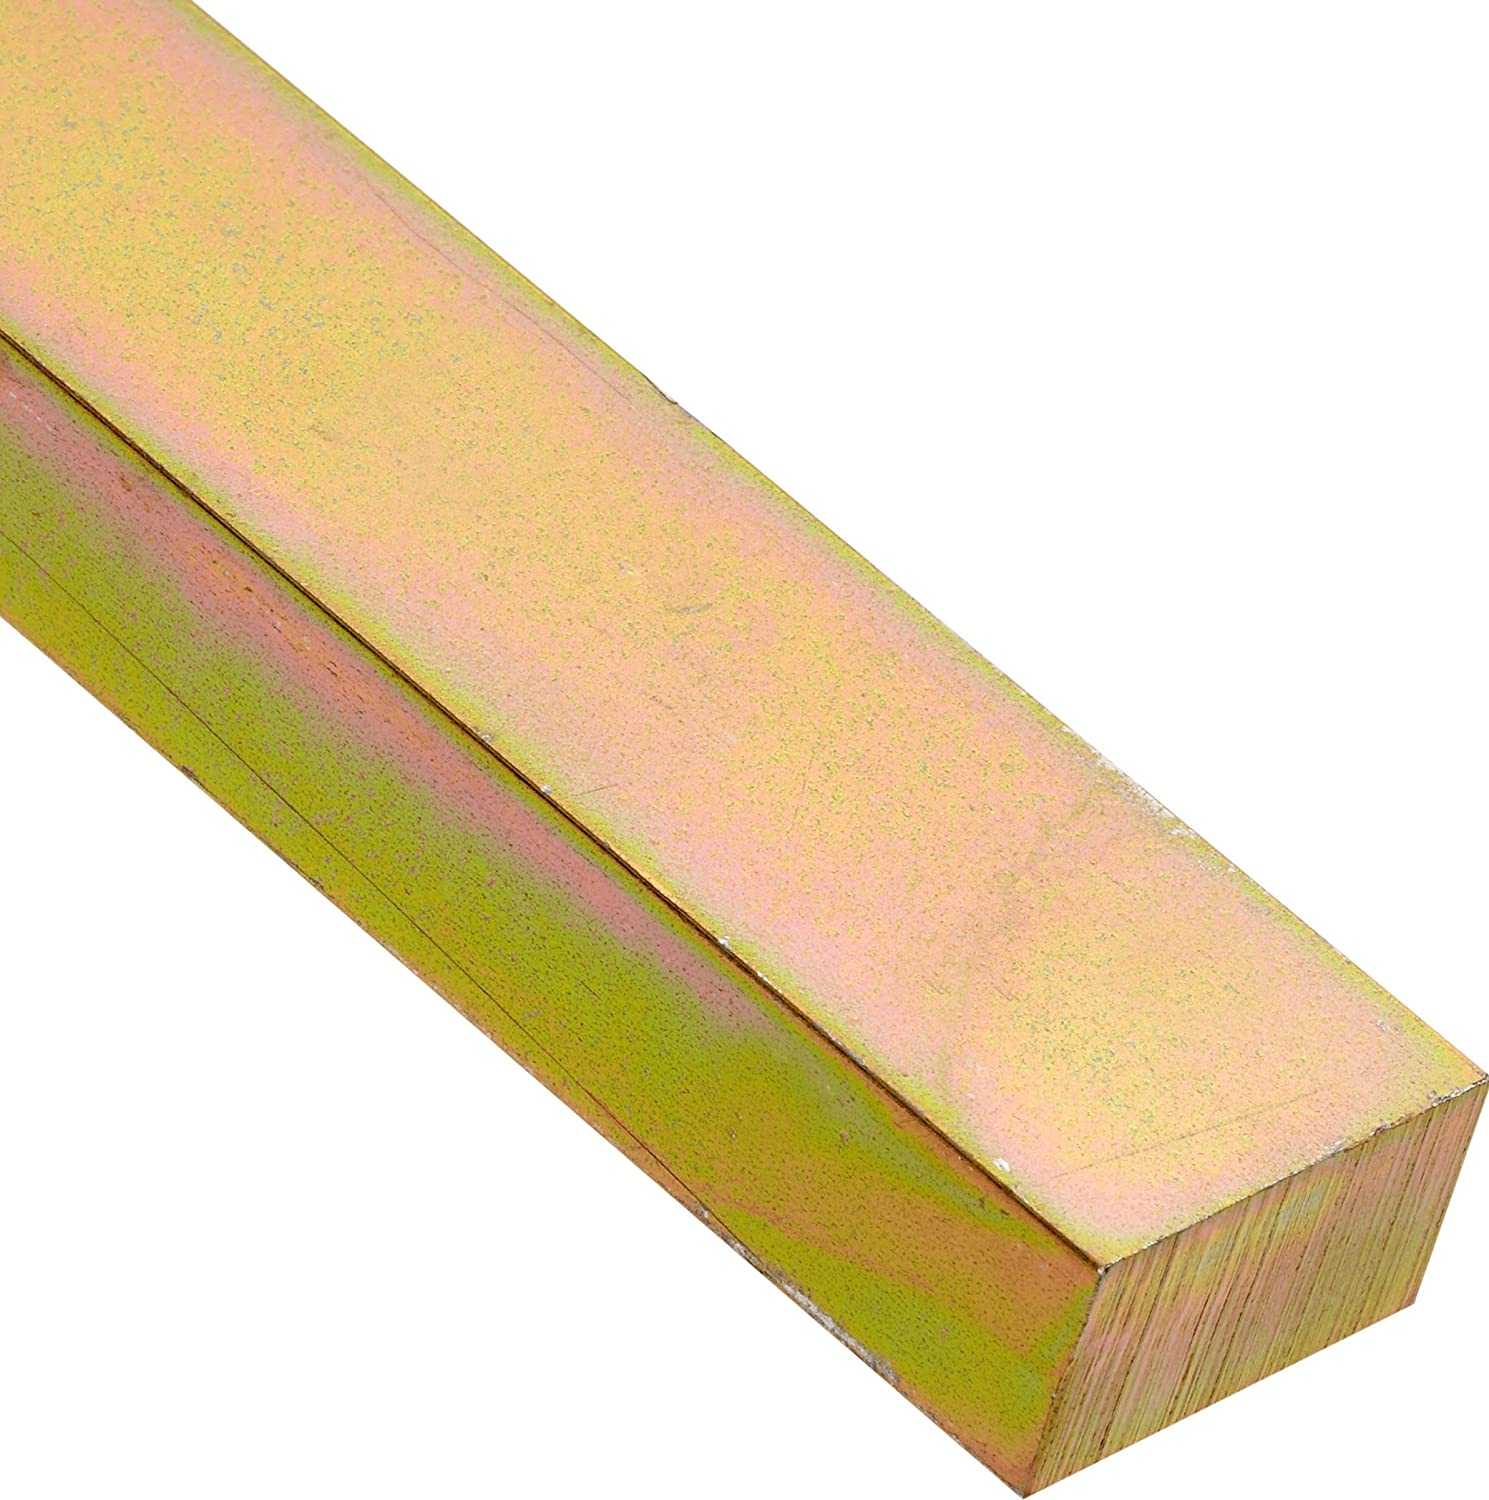 Steel Key Stock 7 mm Thickness Standard Tolerance Gold Dichromate Finish Pack of 6 18 mm Width 12 Length Metric